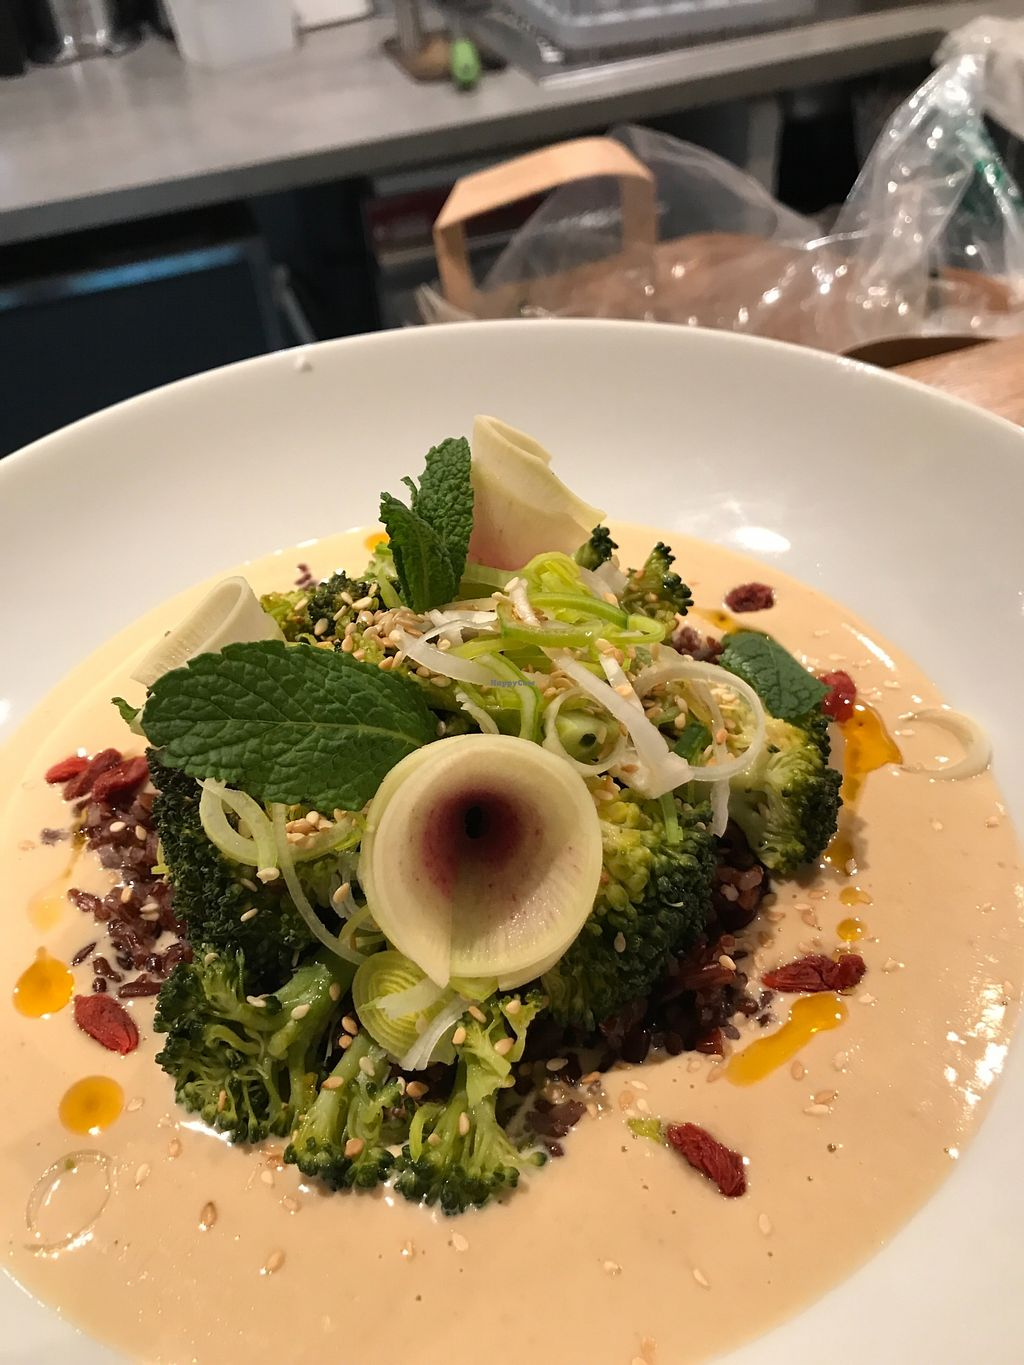 """Photo of Le Grenier de Notre Dame  by <a href=""""/members/profile/meire"""">meire</a> <br/>Wild rice from Camargue, roasted broccoli, sesame, radish, leek, goji berry, mint and soy cream. Perfect match!  <br/> March 26, 2018  - <a href='/contact/abuse/image/3523/376239'>Report</a>"""